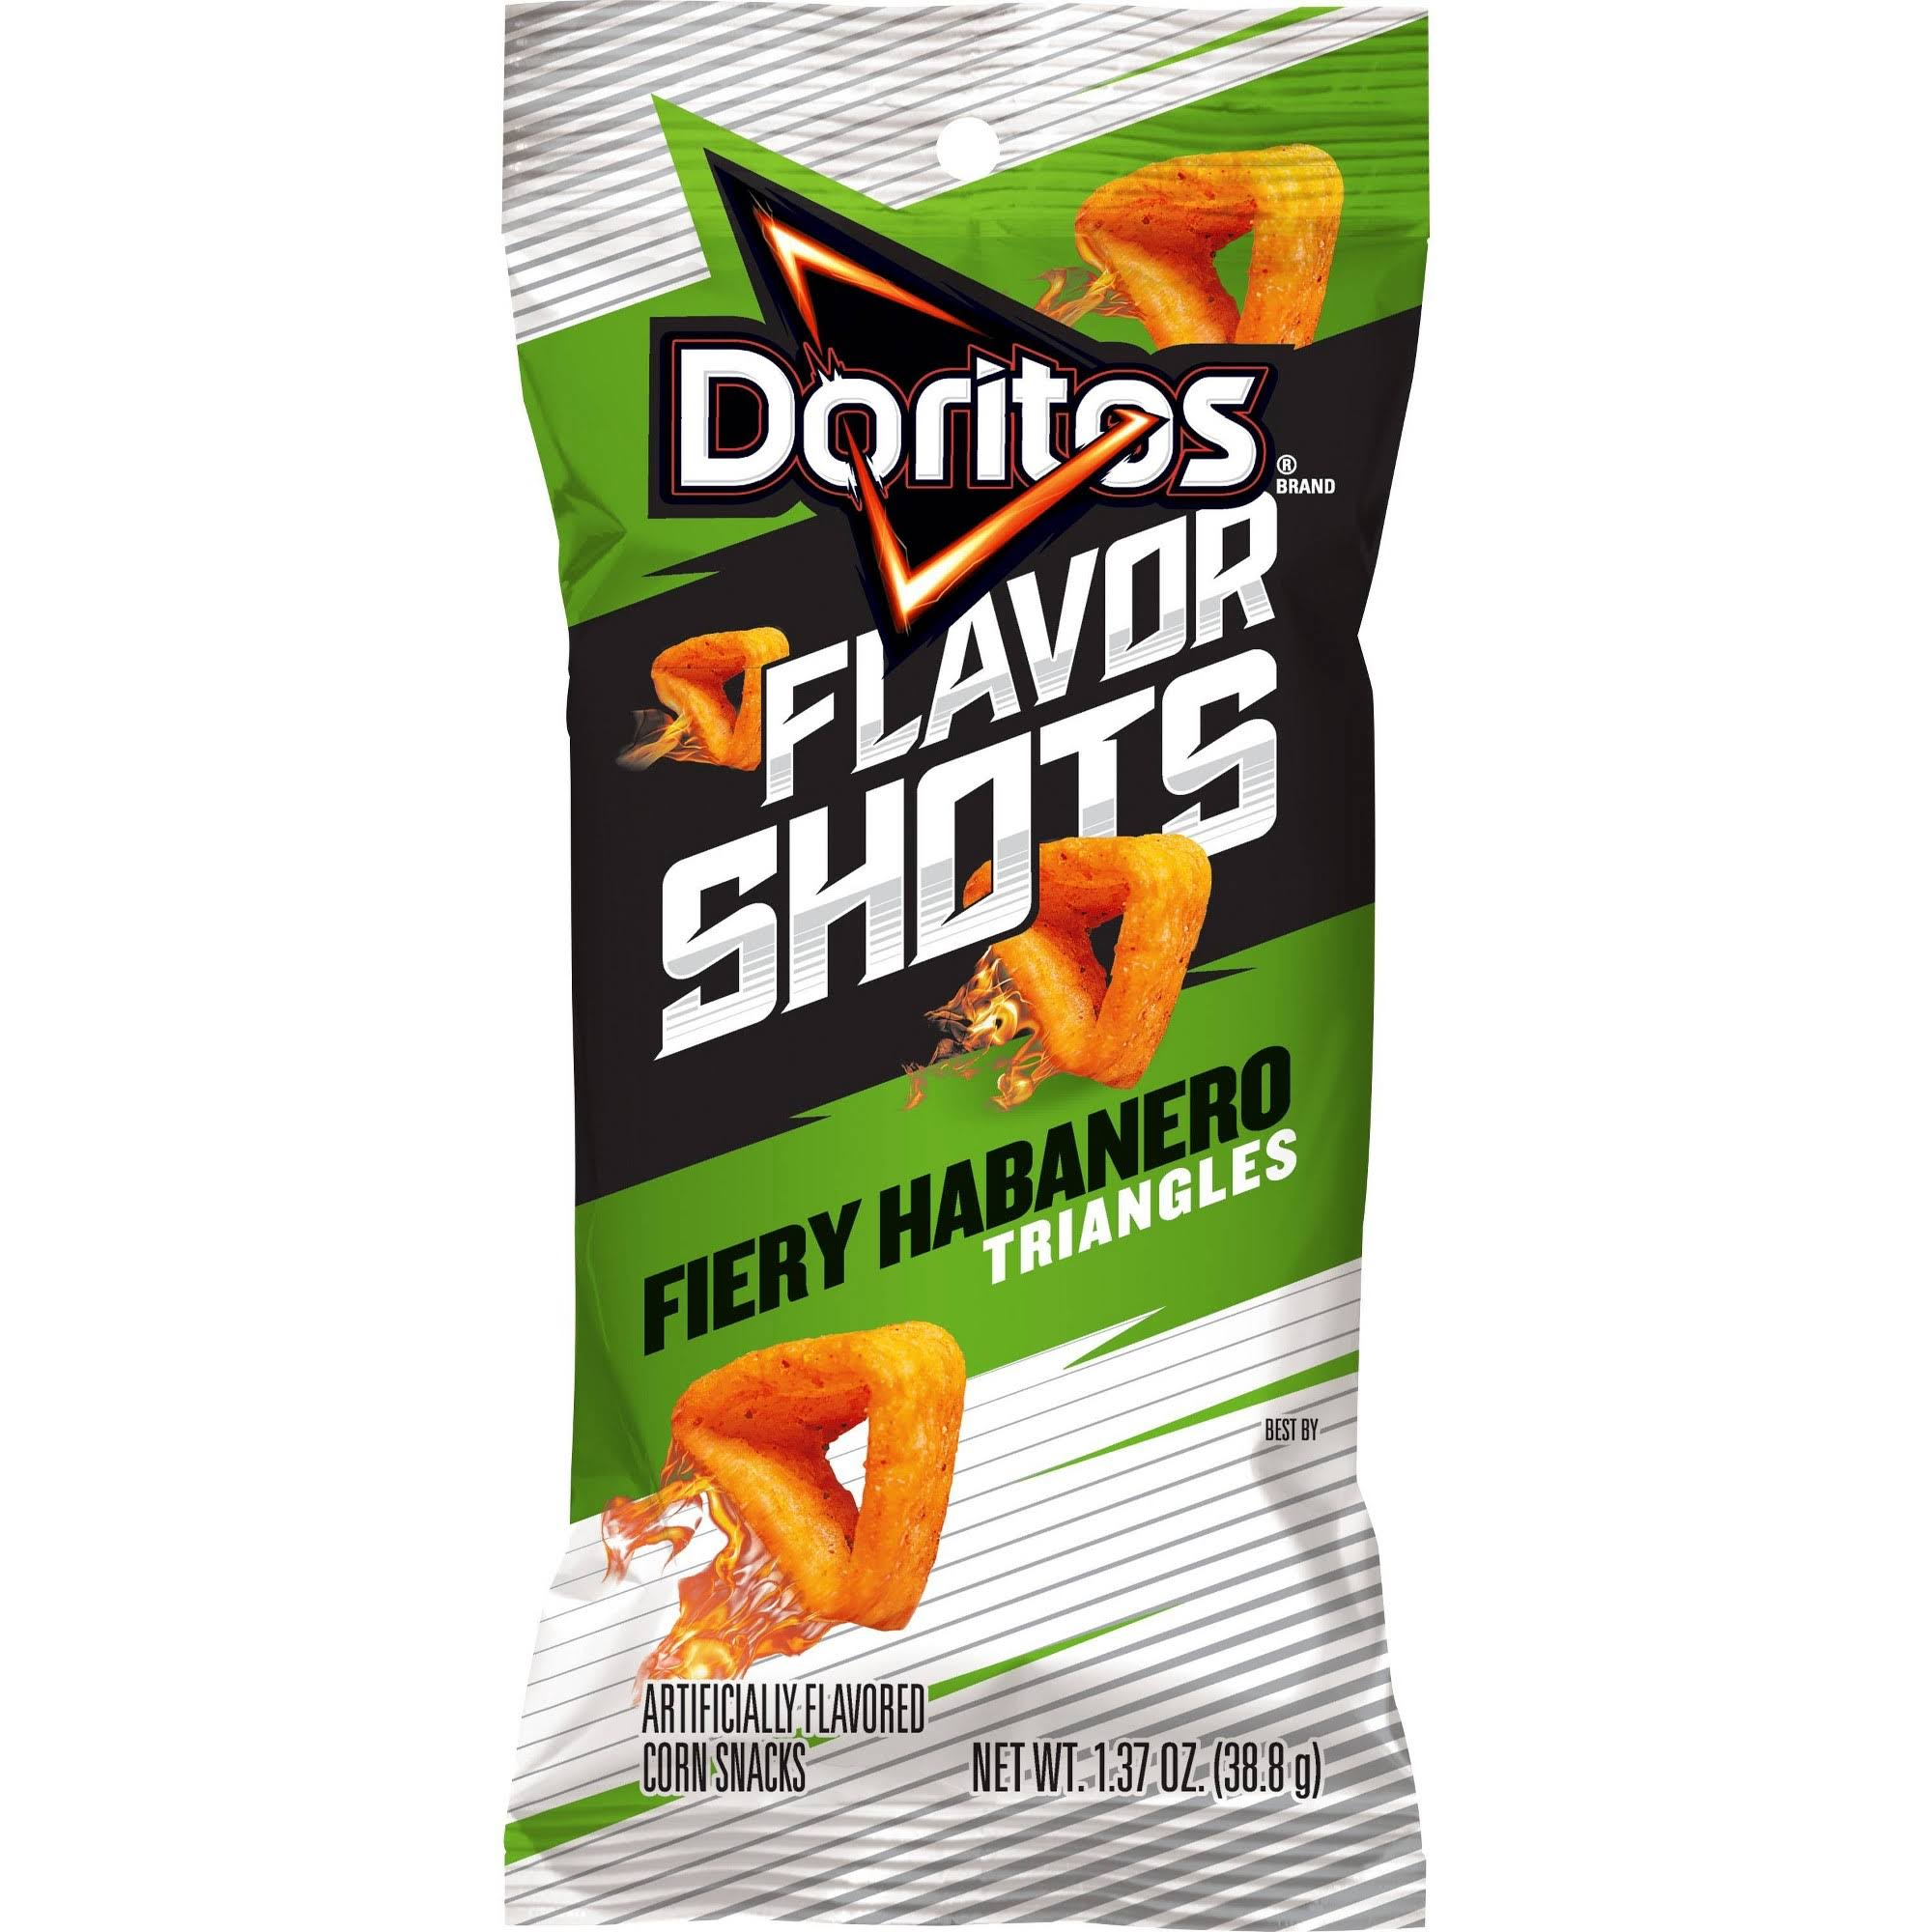 Doritos Flavor Shots Fiery Habanero Triangles Corn Snacks - 38.8g